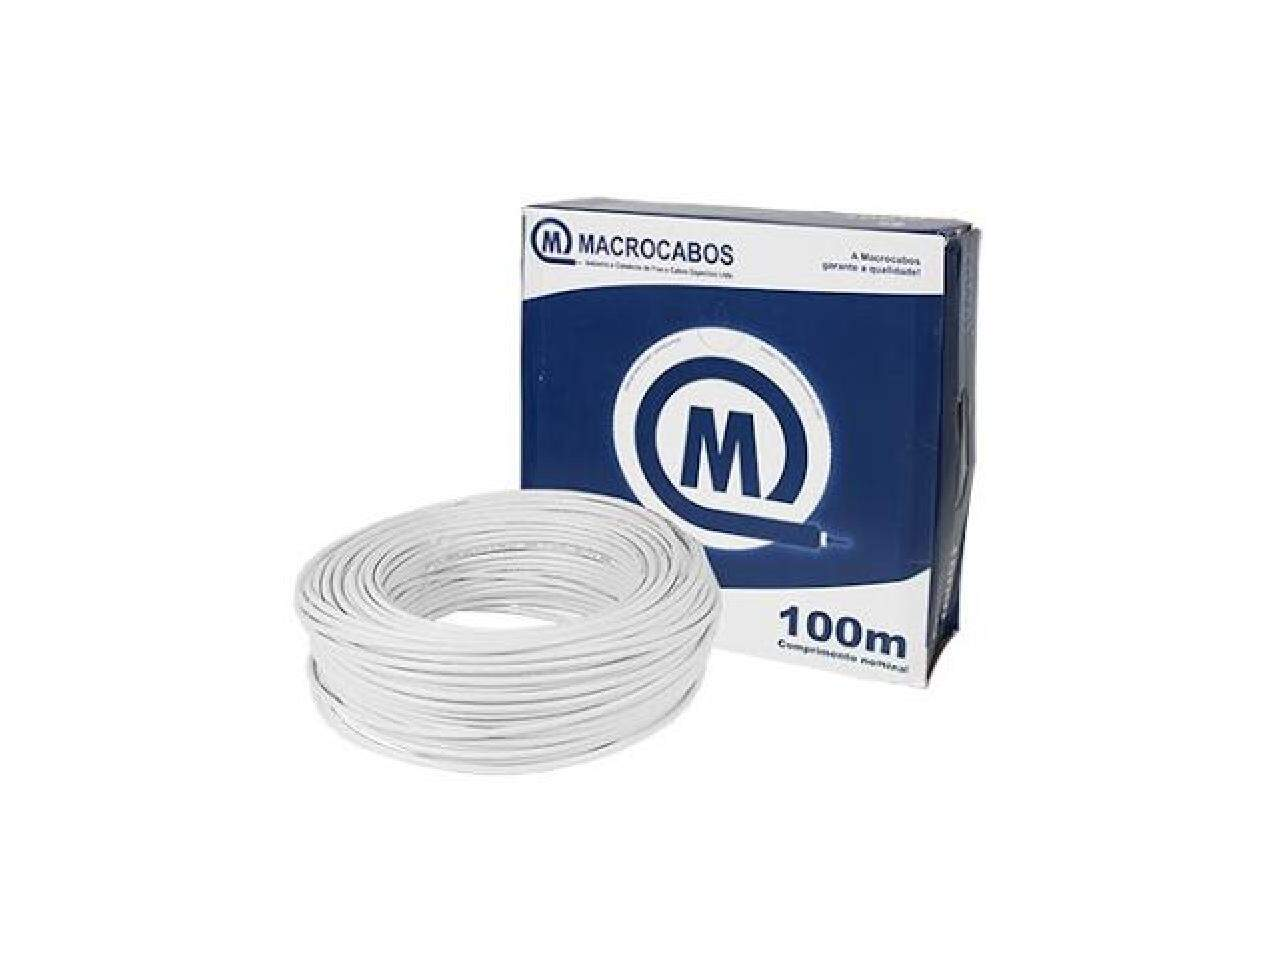 CABO COAXIAL RG 59 67% - 100M